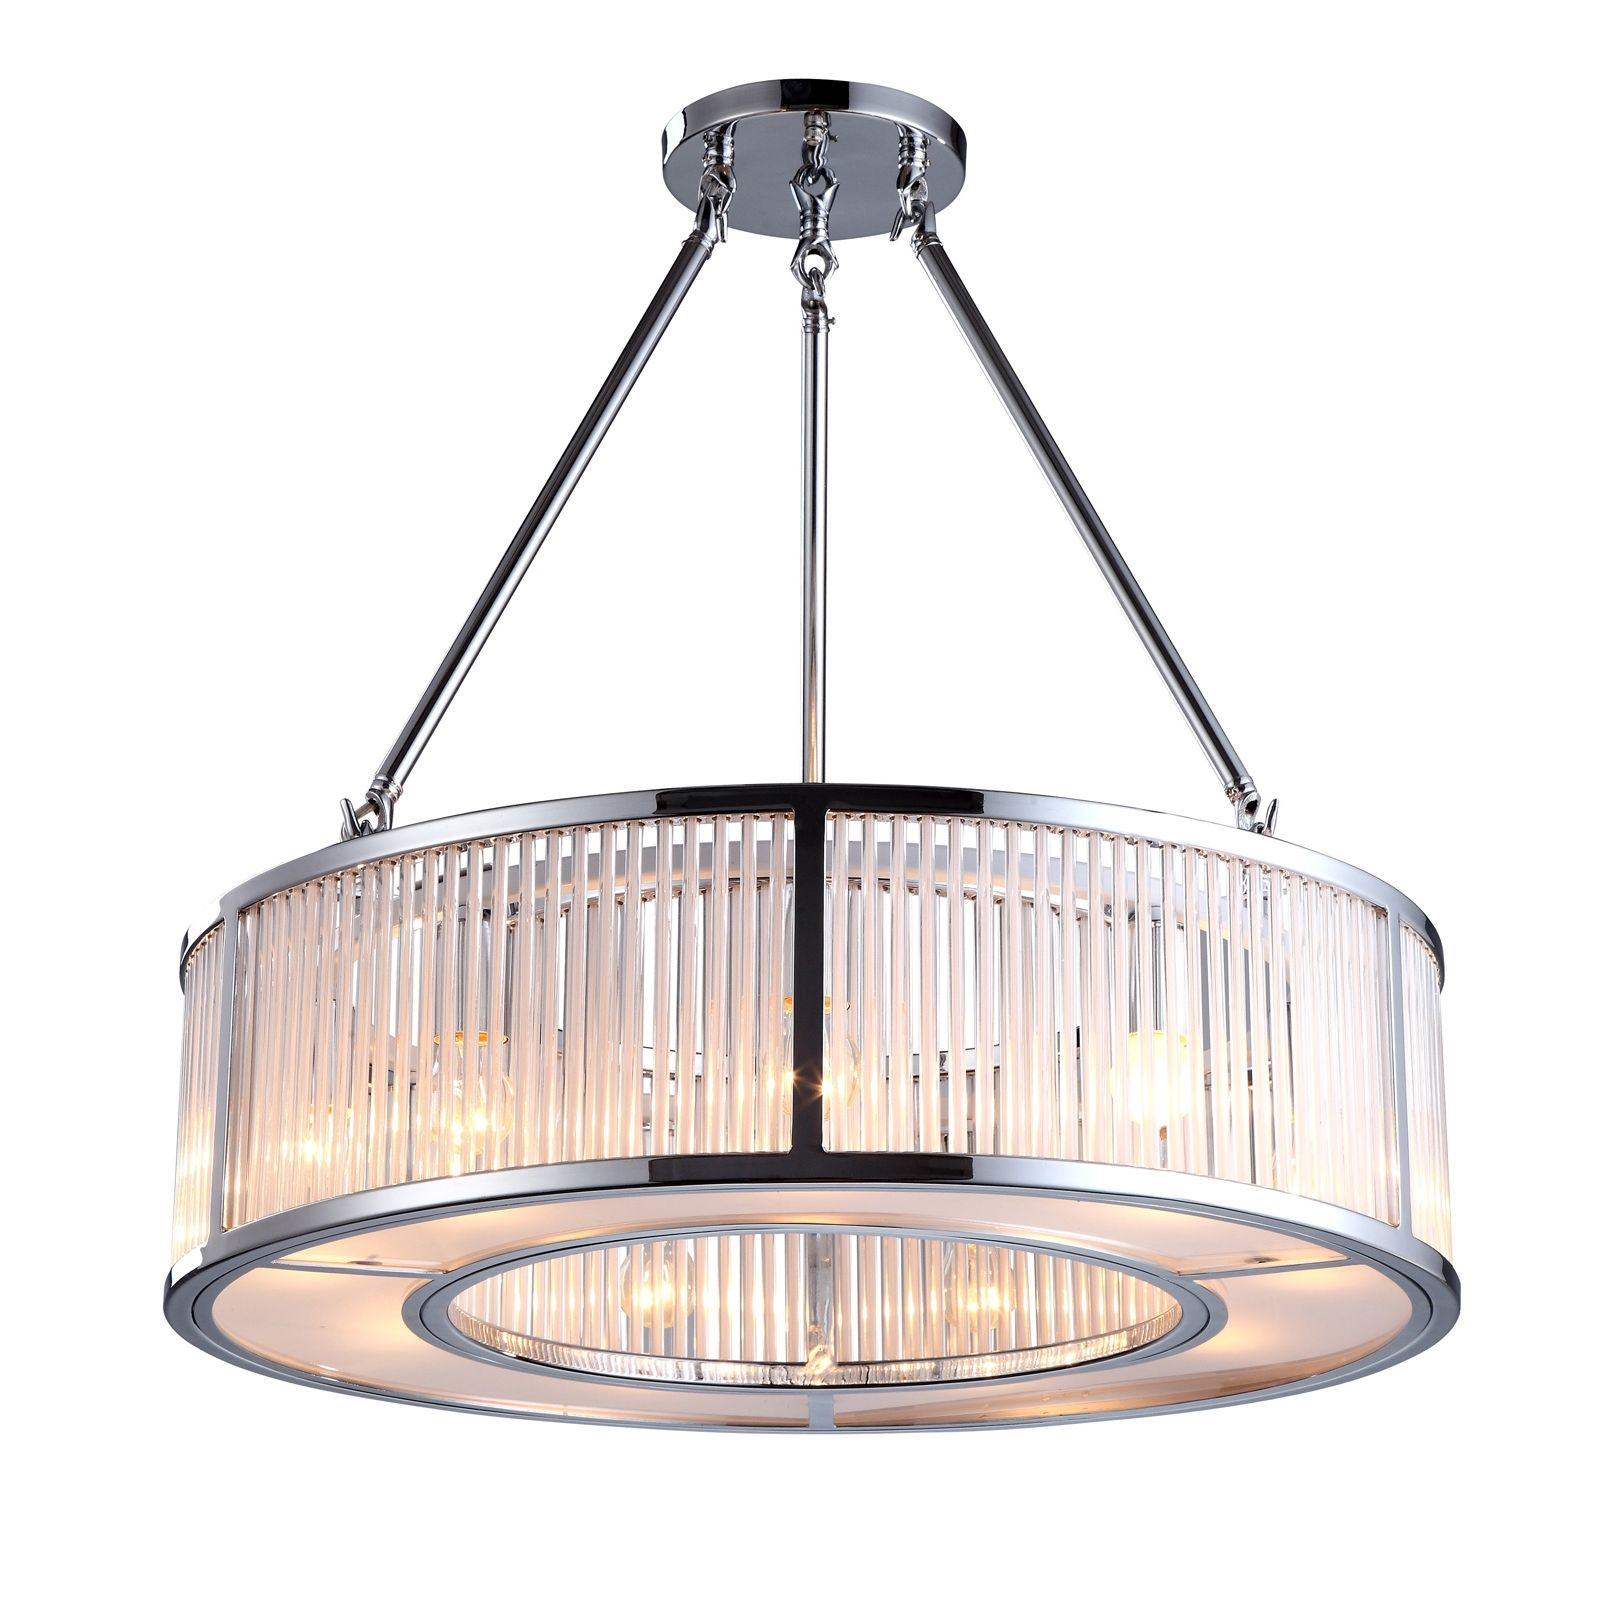 Aston ceiling light chandeliers ceiling lights lighting aston ceiling light chandeliers ceiling lights lighting mirrors sweetpea mozeypictures Images